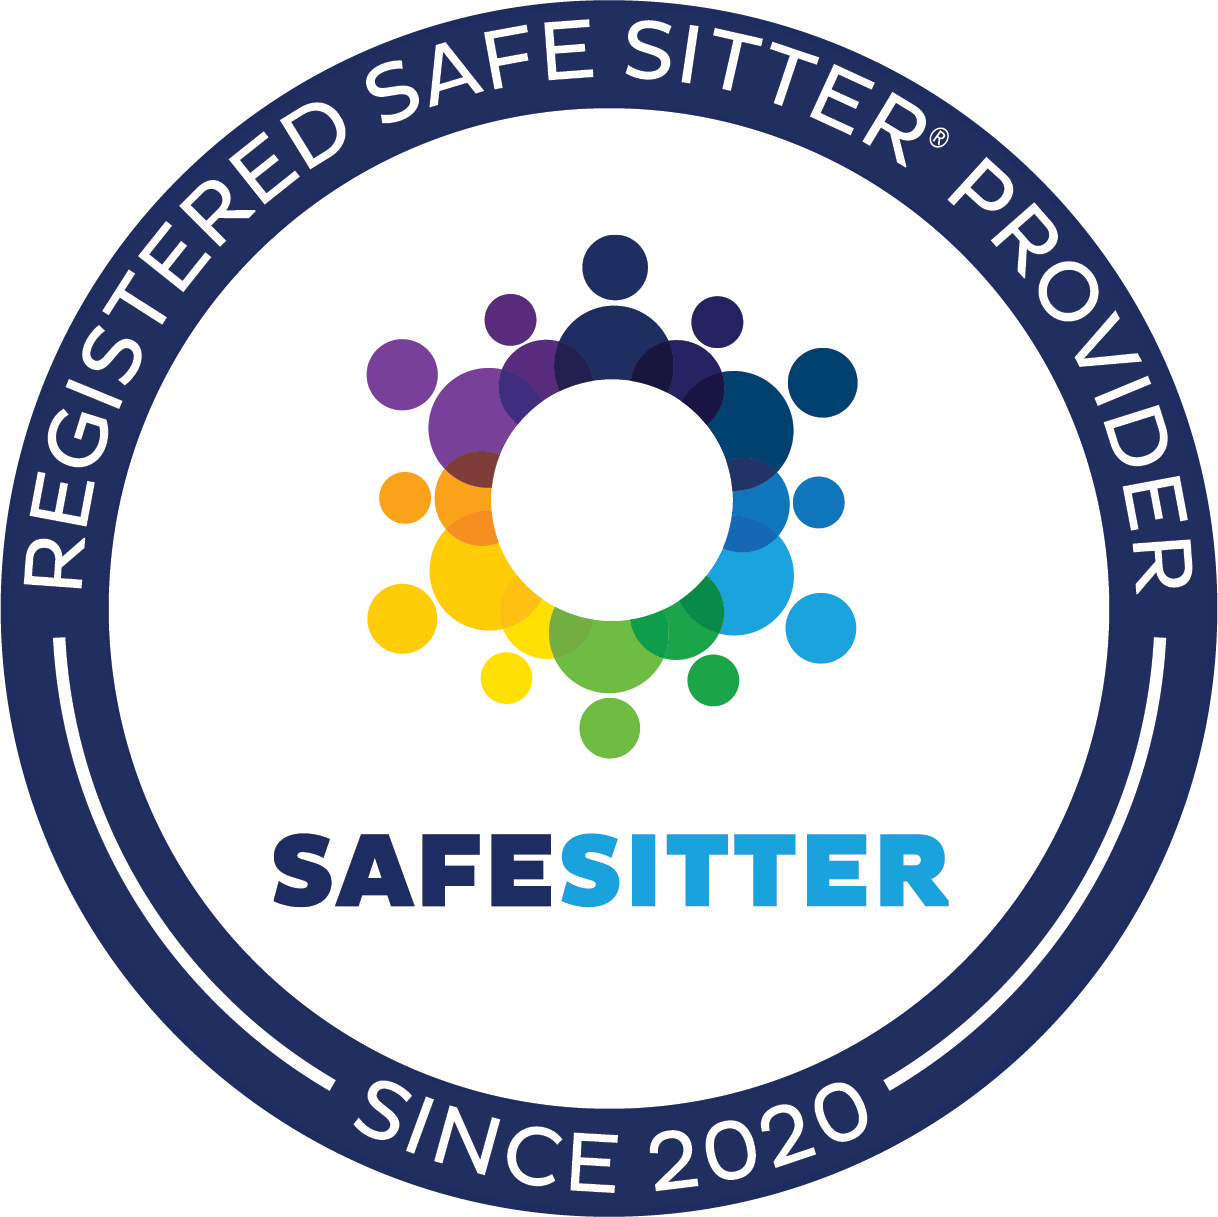 Safe Sitter Registered Provider since 2020